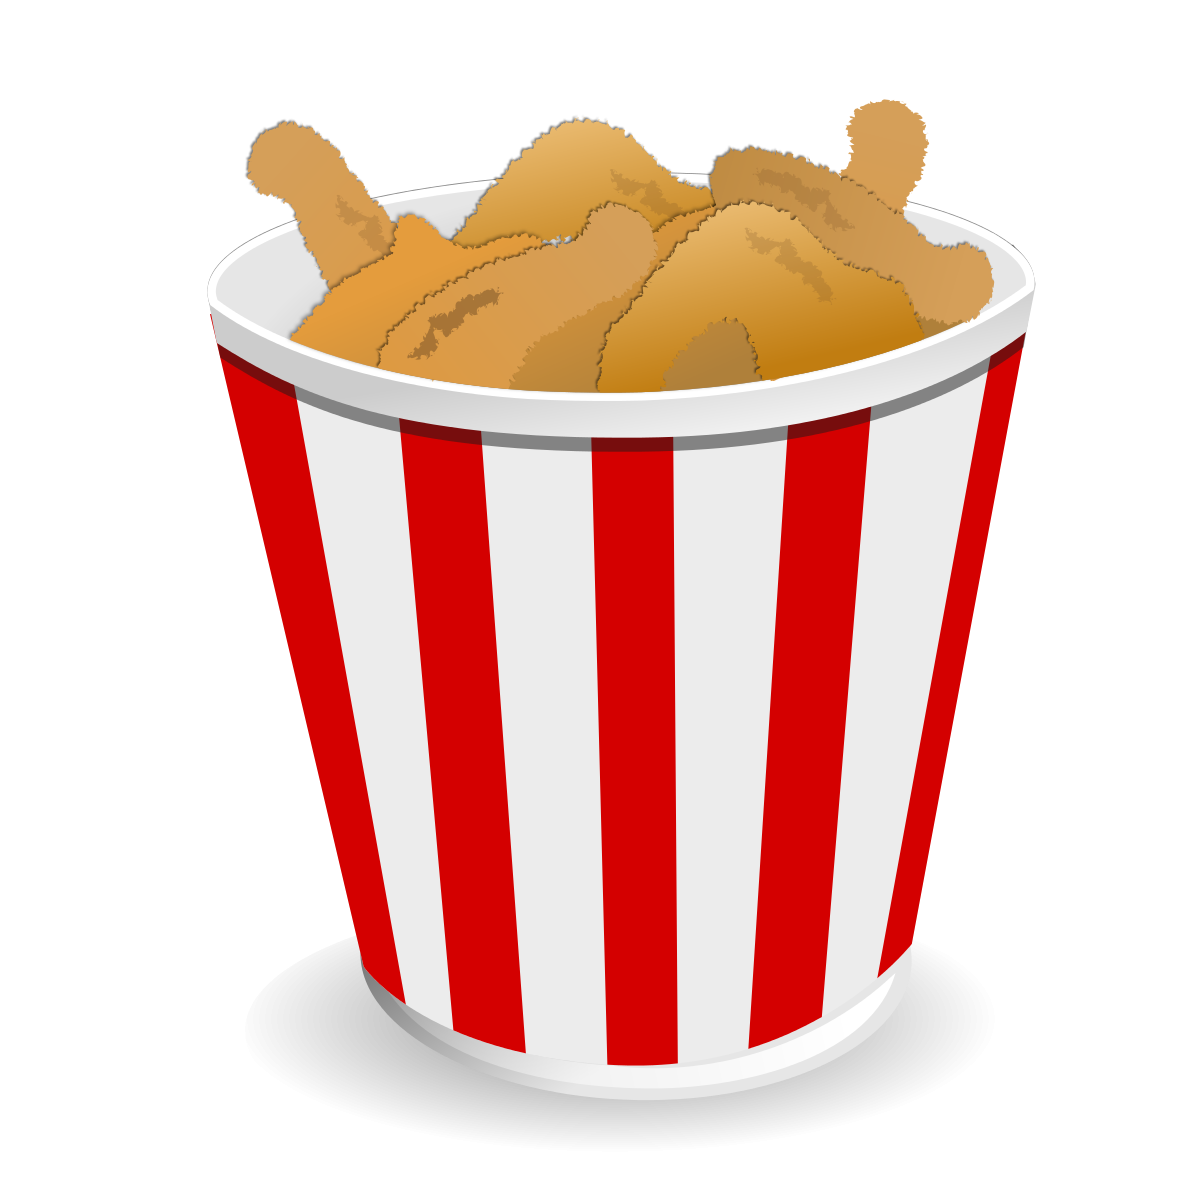 clip art library download Fried Chicken Clipart at GetDrawings